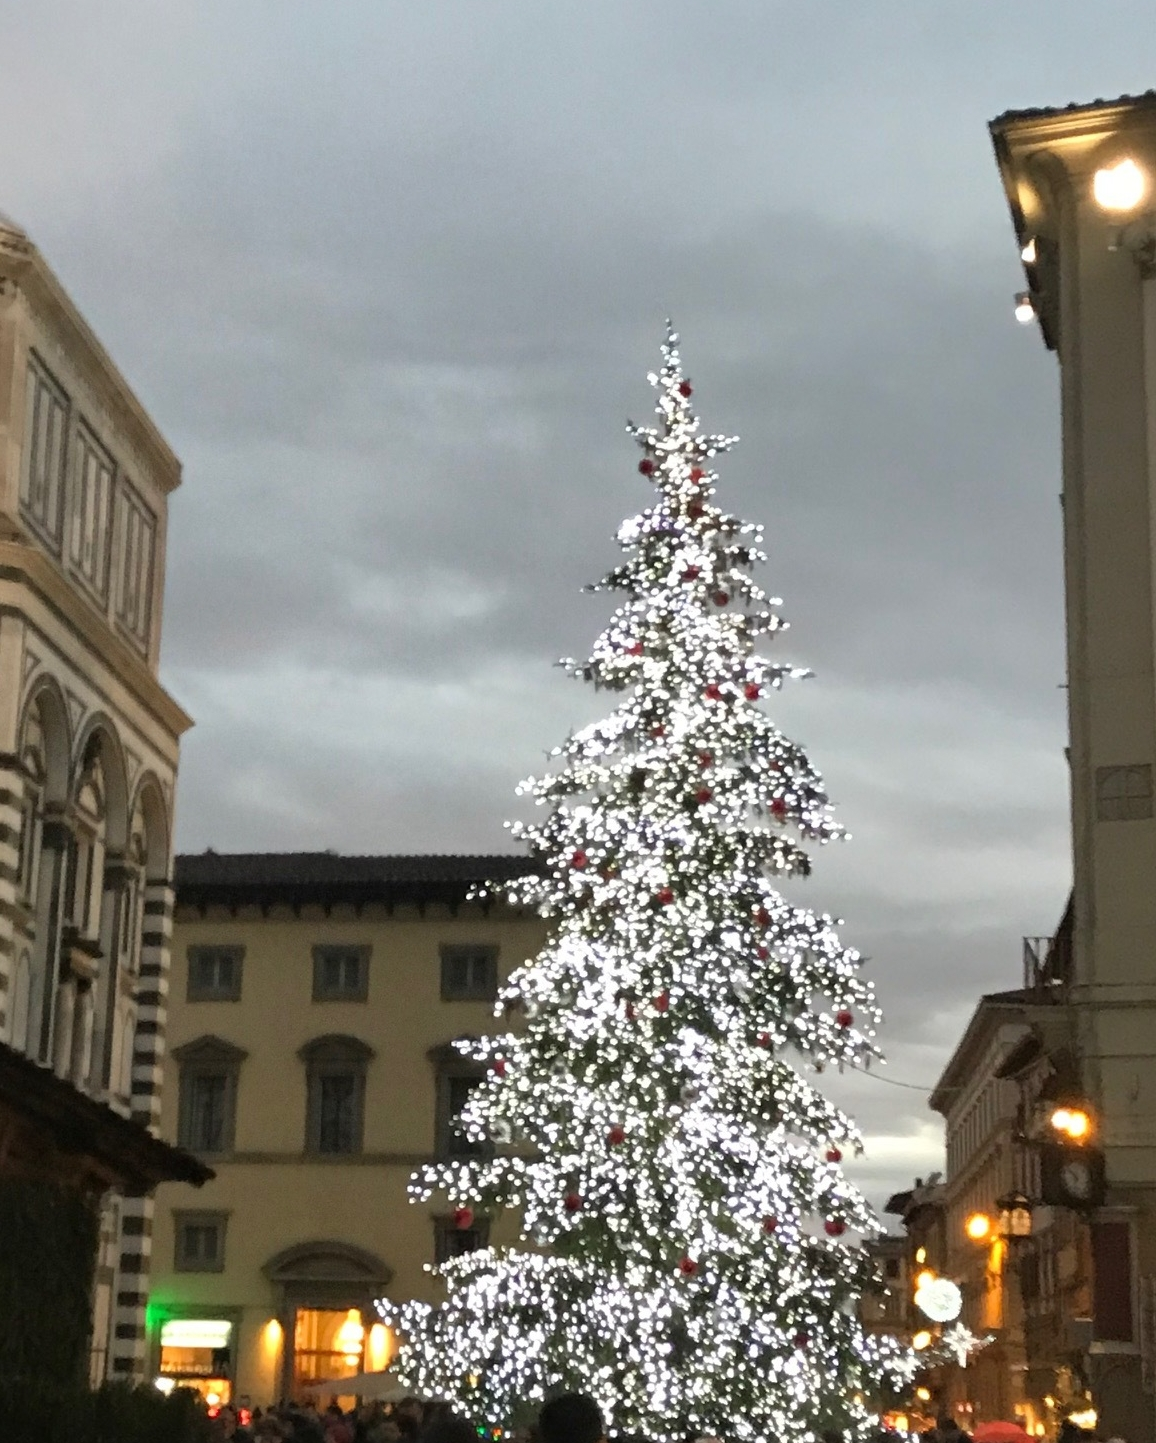 Christmas Tree in Florence, Itally